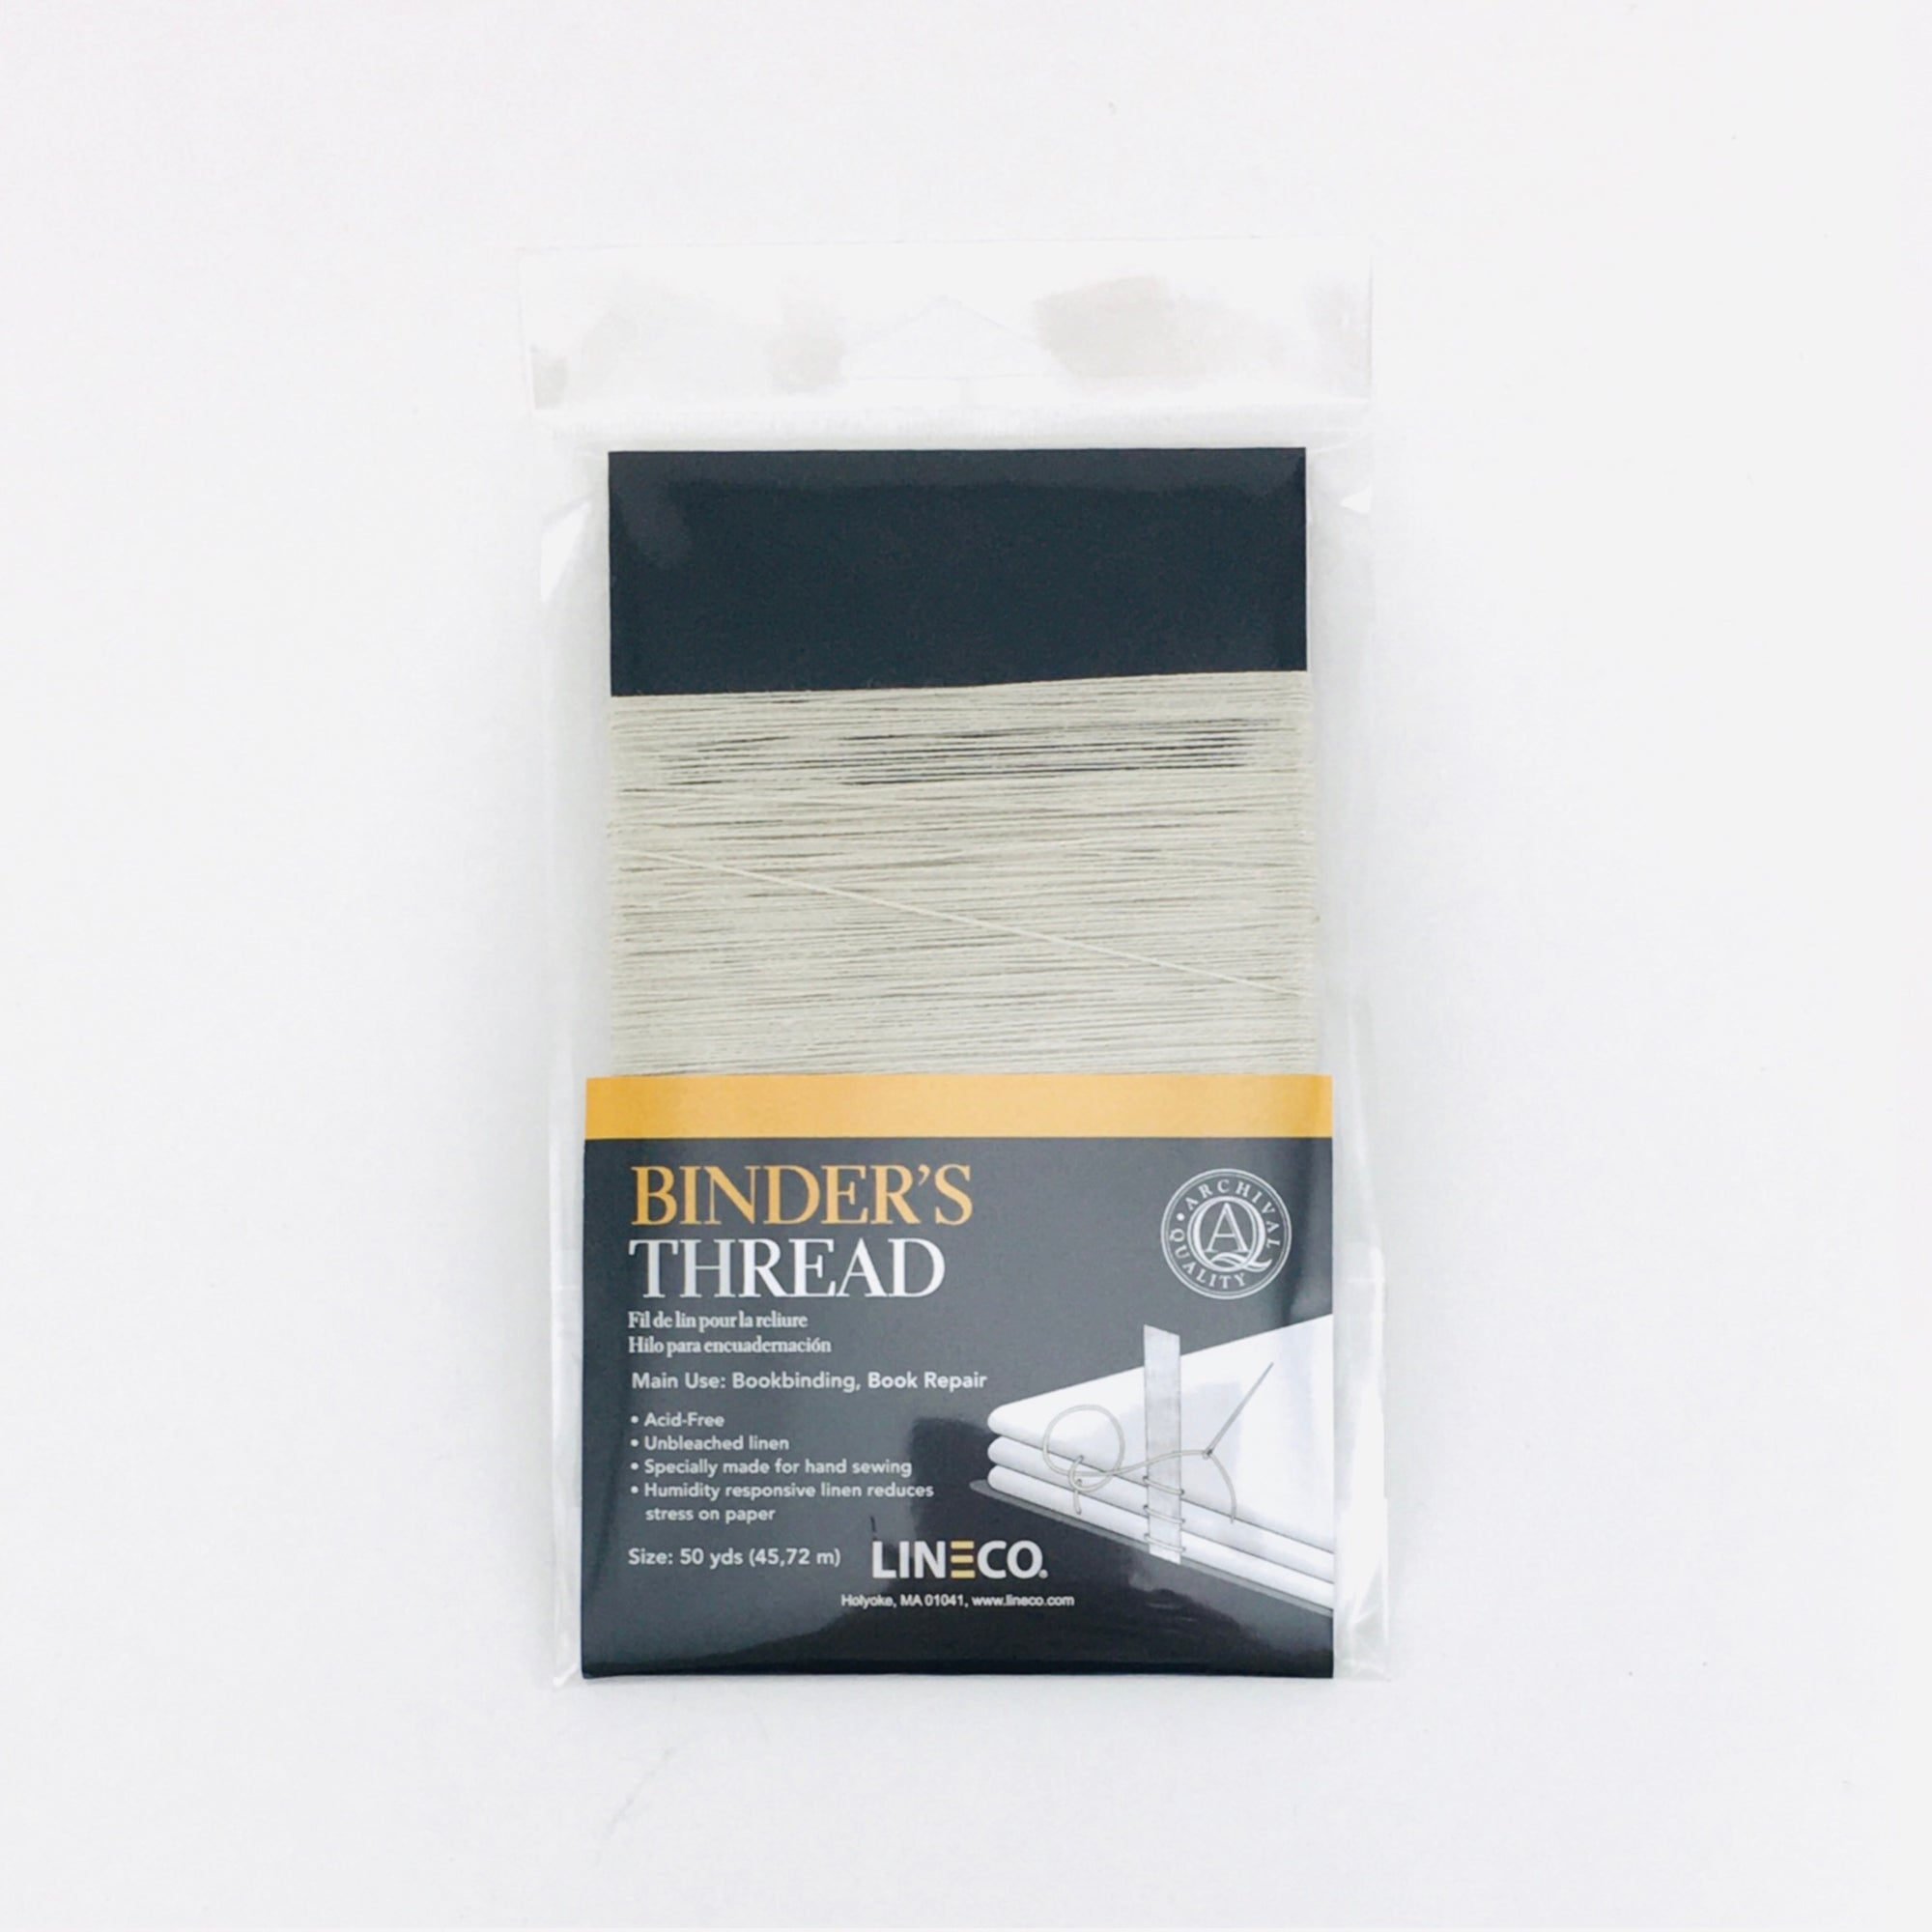 Lineco Binder's Thread